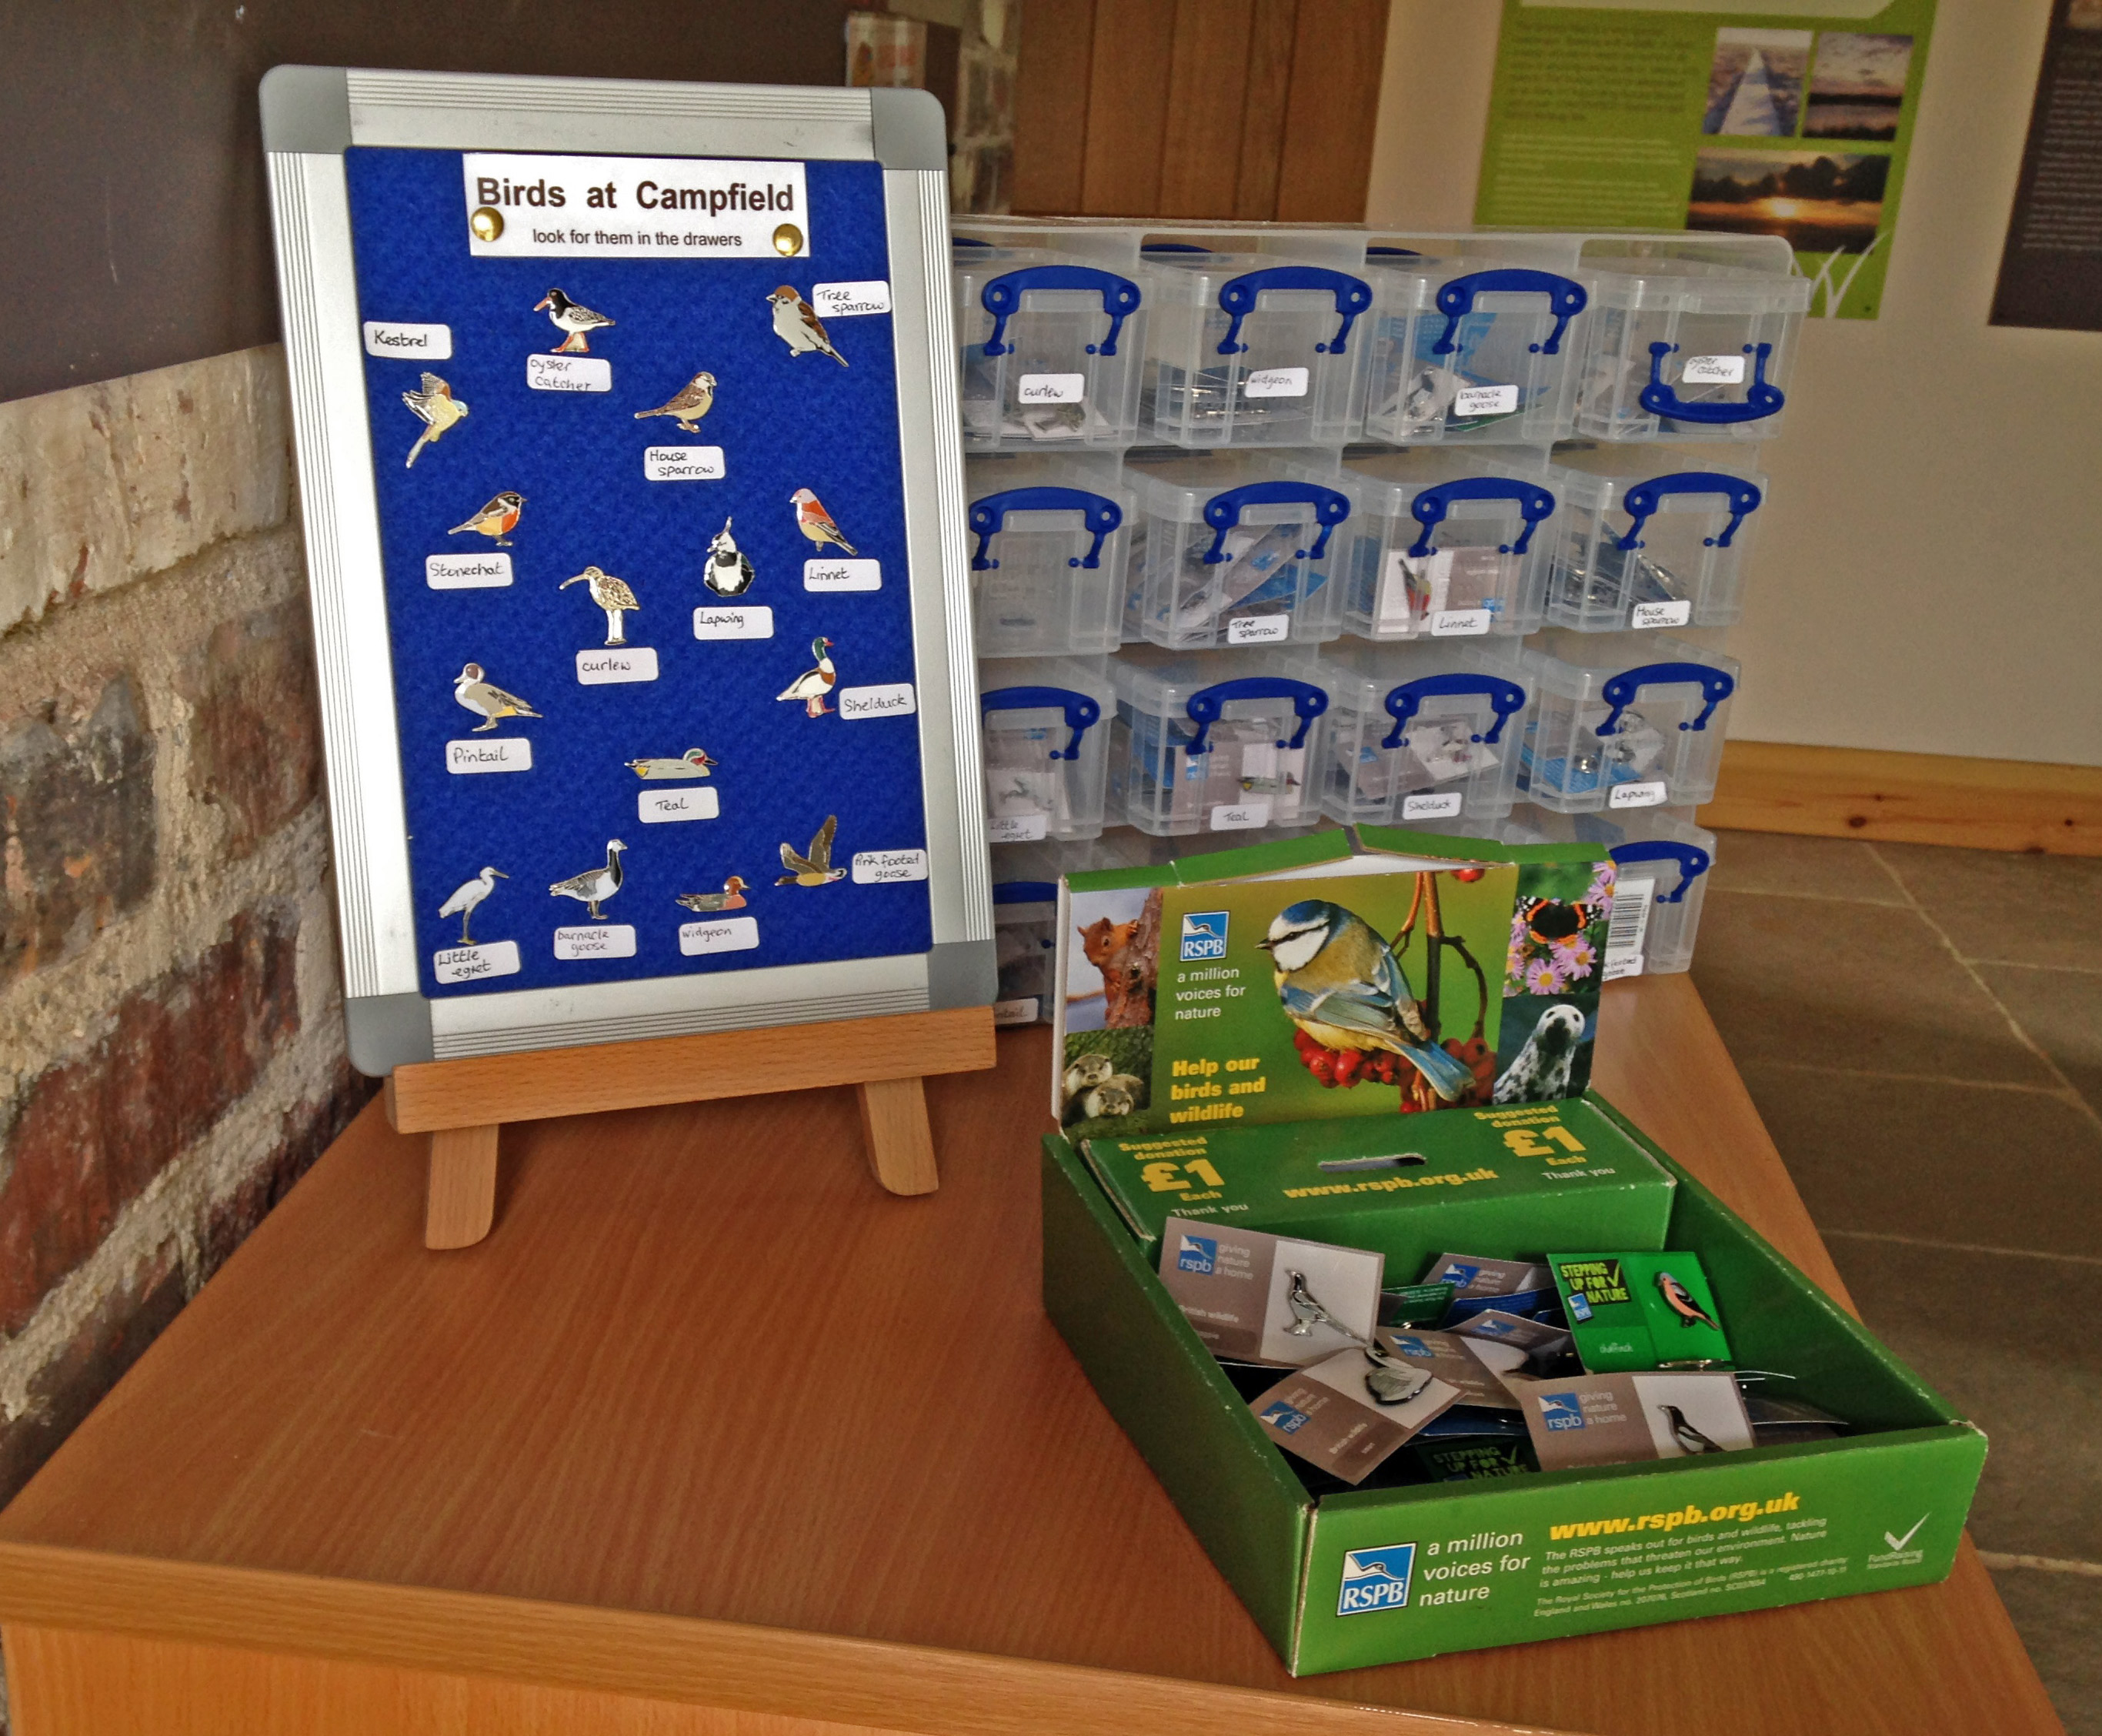 RSPB Pin Badge display at the Solway Wetlands Centre, Campfield